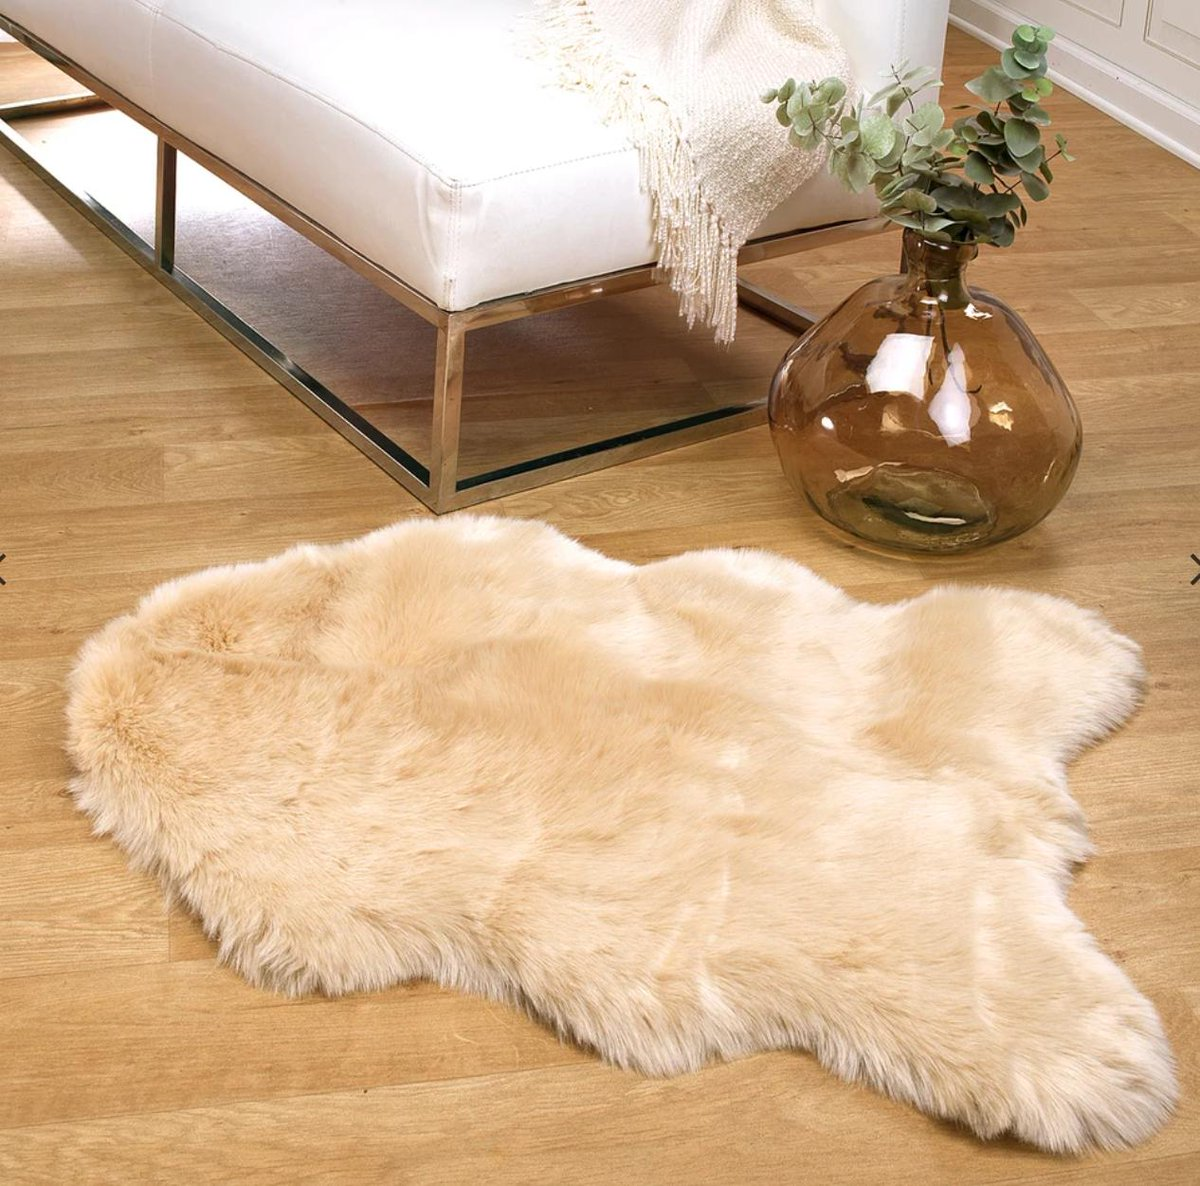 Don't forget to show us how you make your home chic with our faux fur rug!    #interiordecor #interiordesigner #homestyle  #instahome #interiorstyling #livingroom #inspiration #luxury #shabbychic #rugs #fauxfurpic.twitter.com/71pNeAqhvm